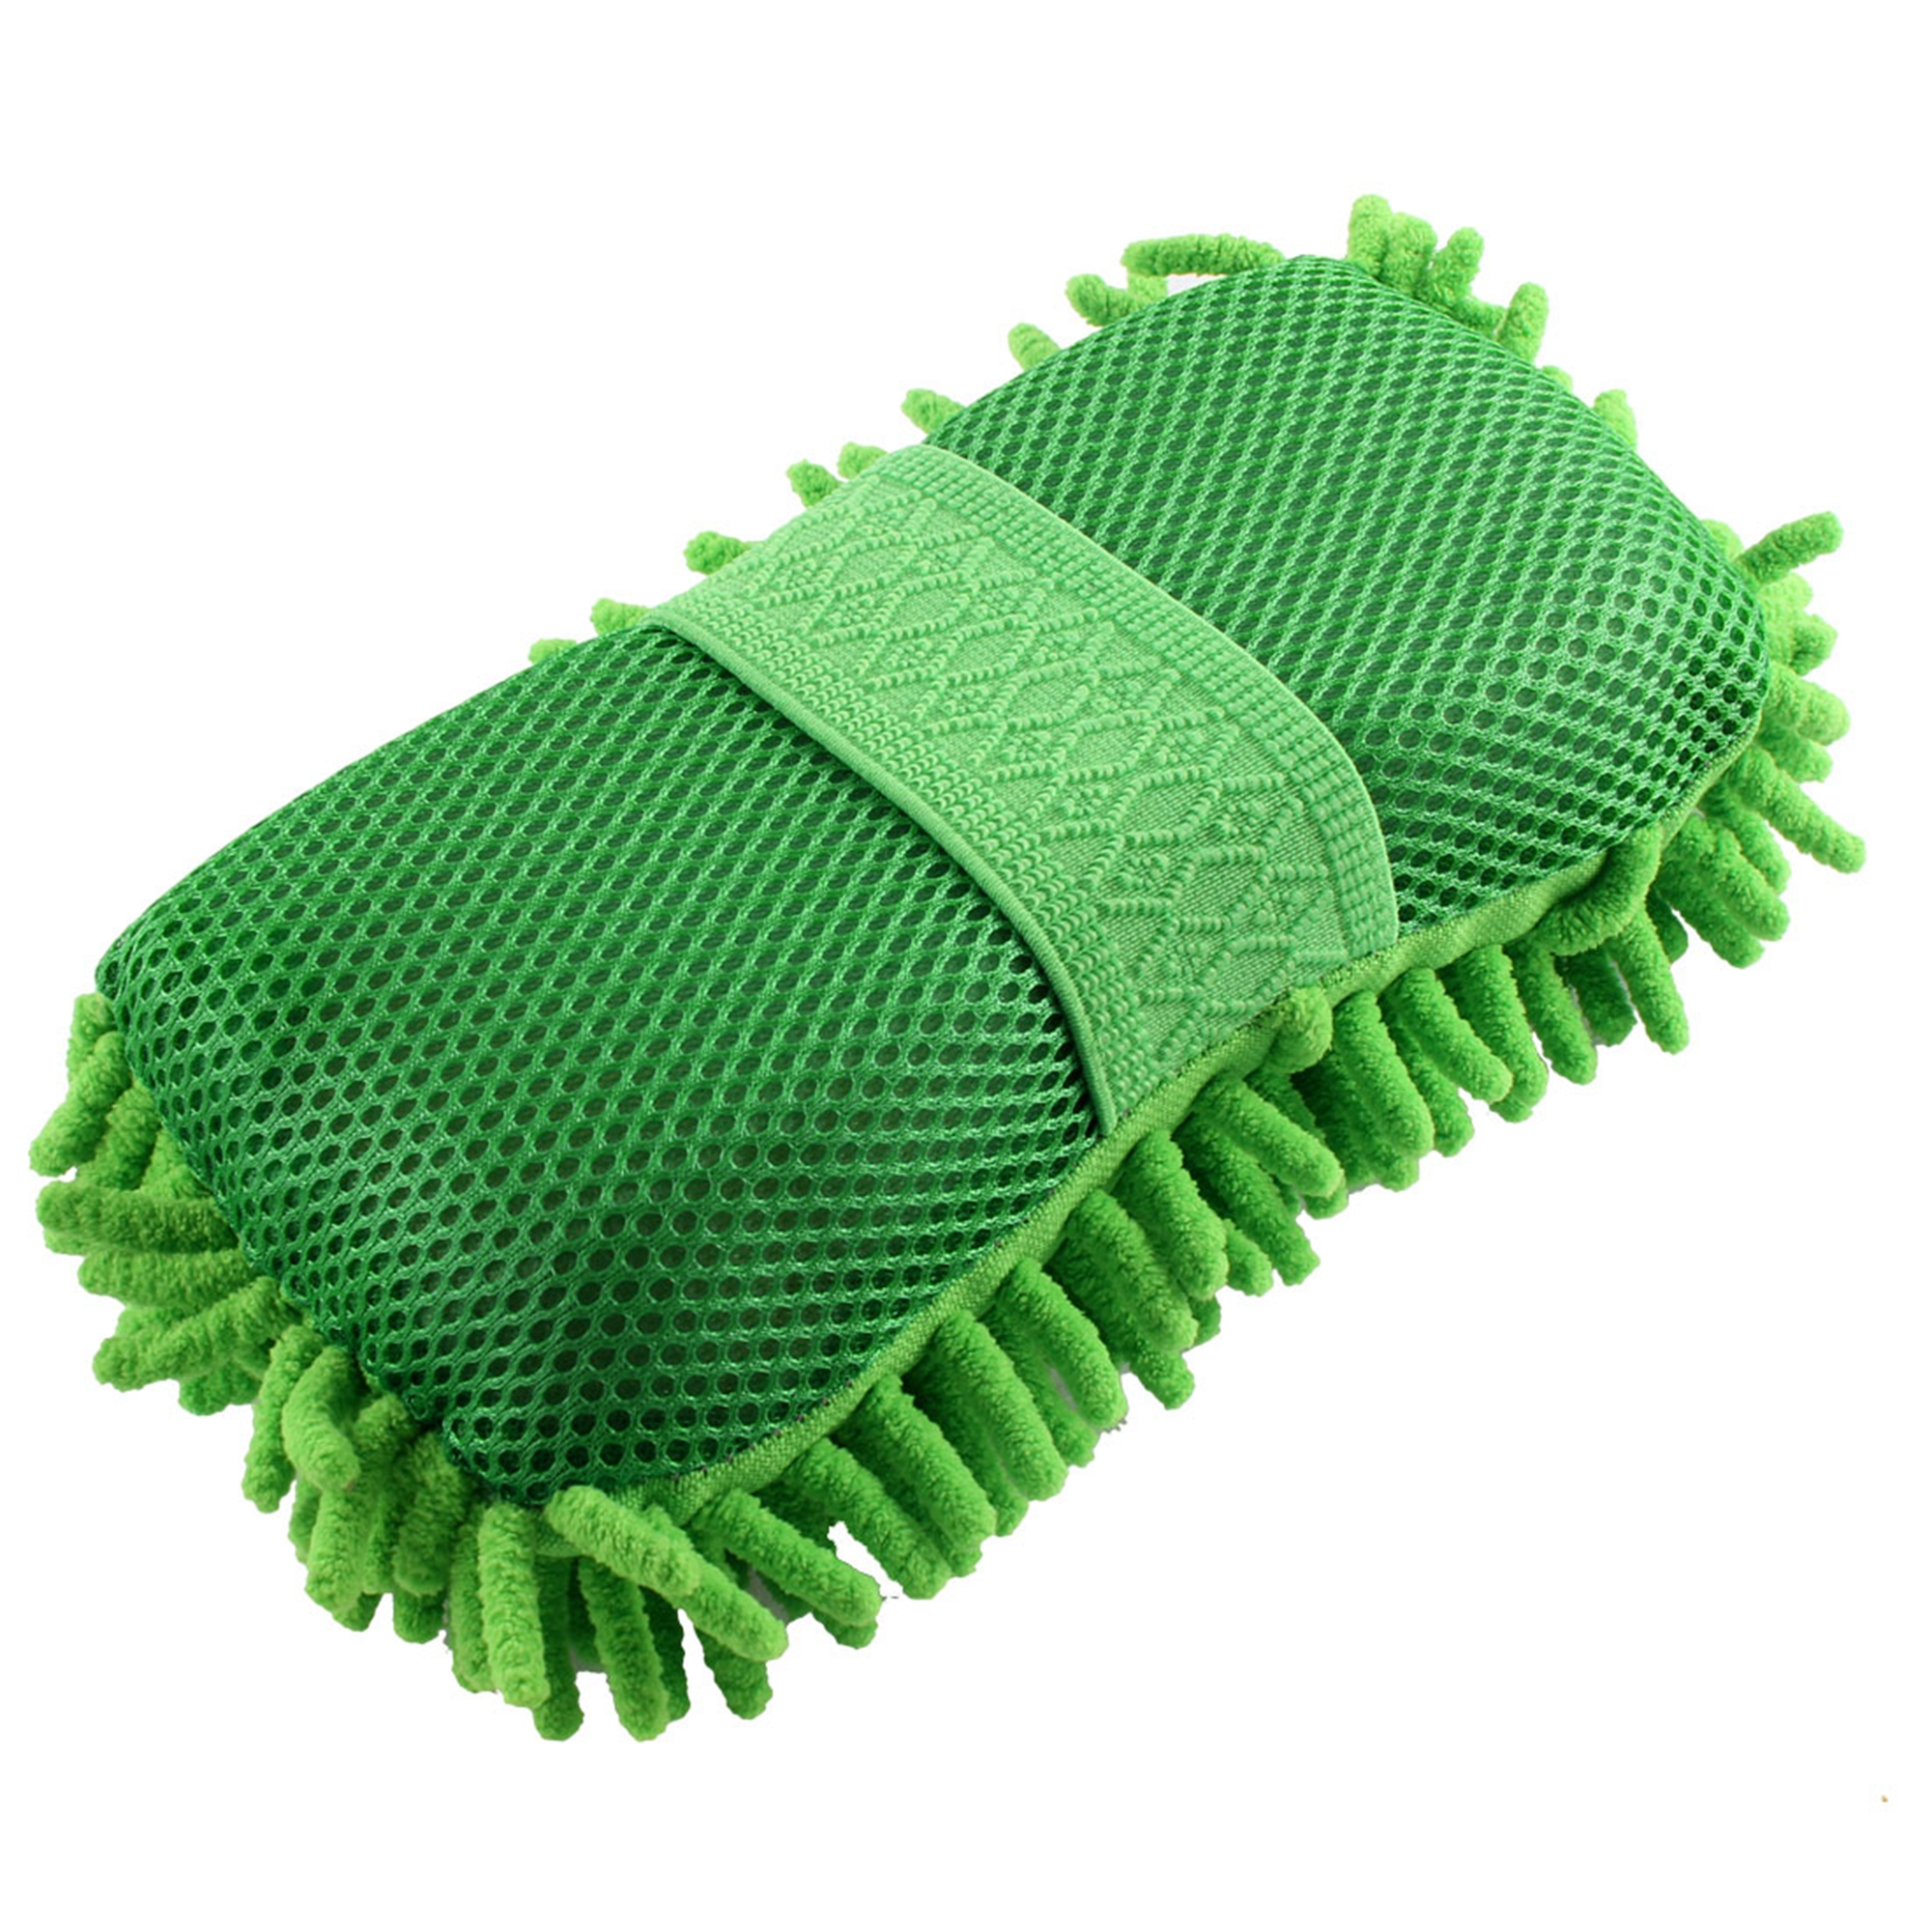 Microfiber Chenille Cleaning Tool Washing Brush Sponge Pad Green for Car Vehicle